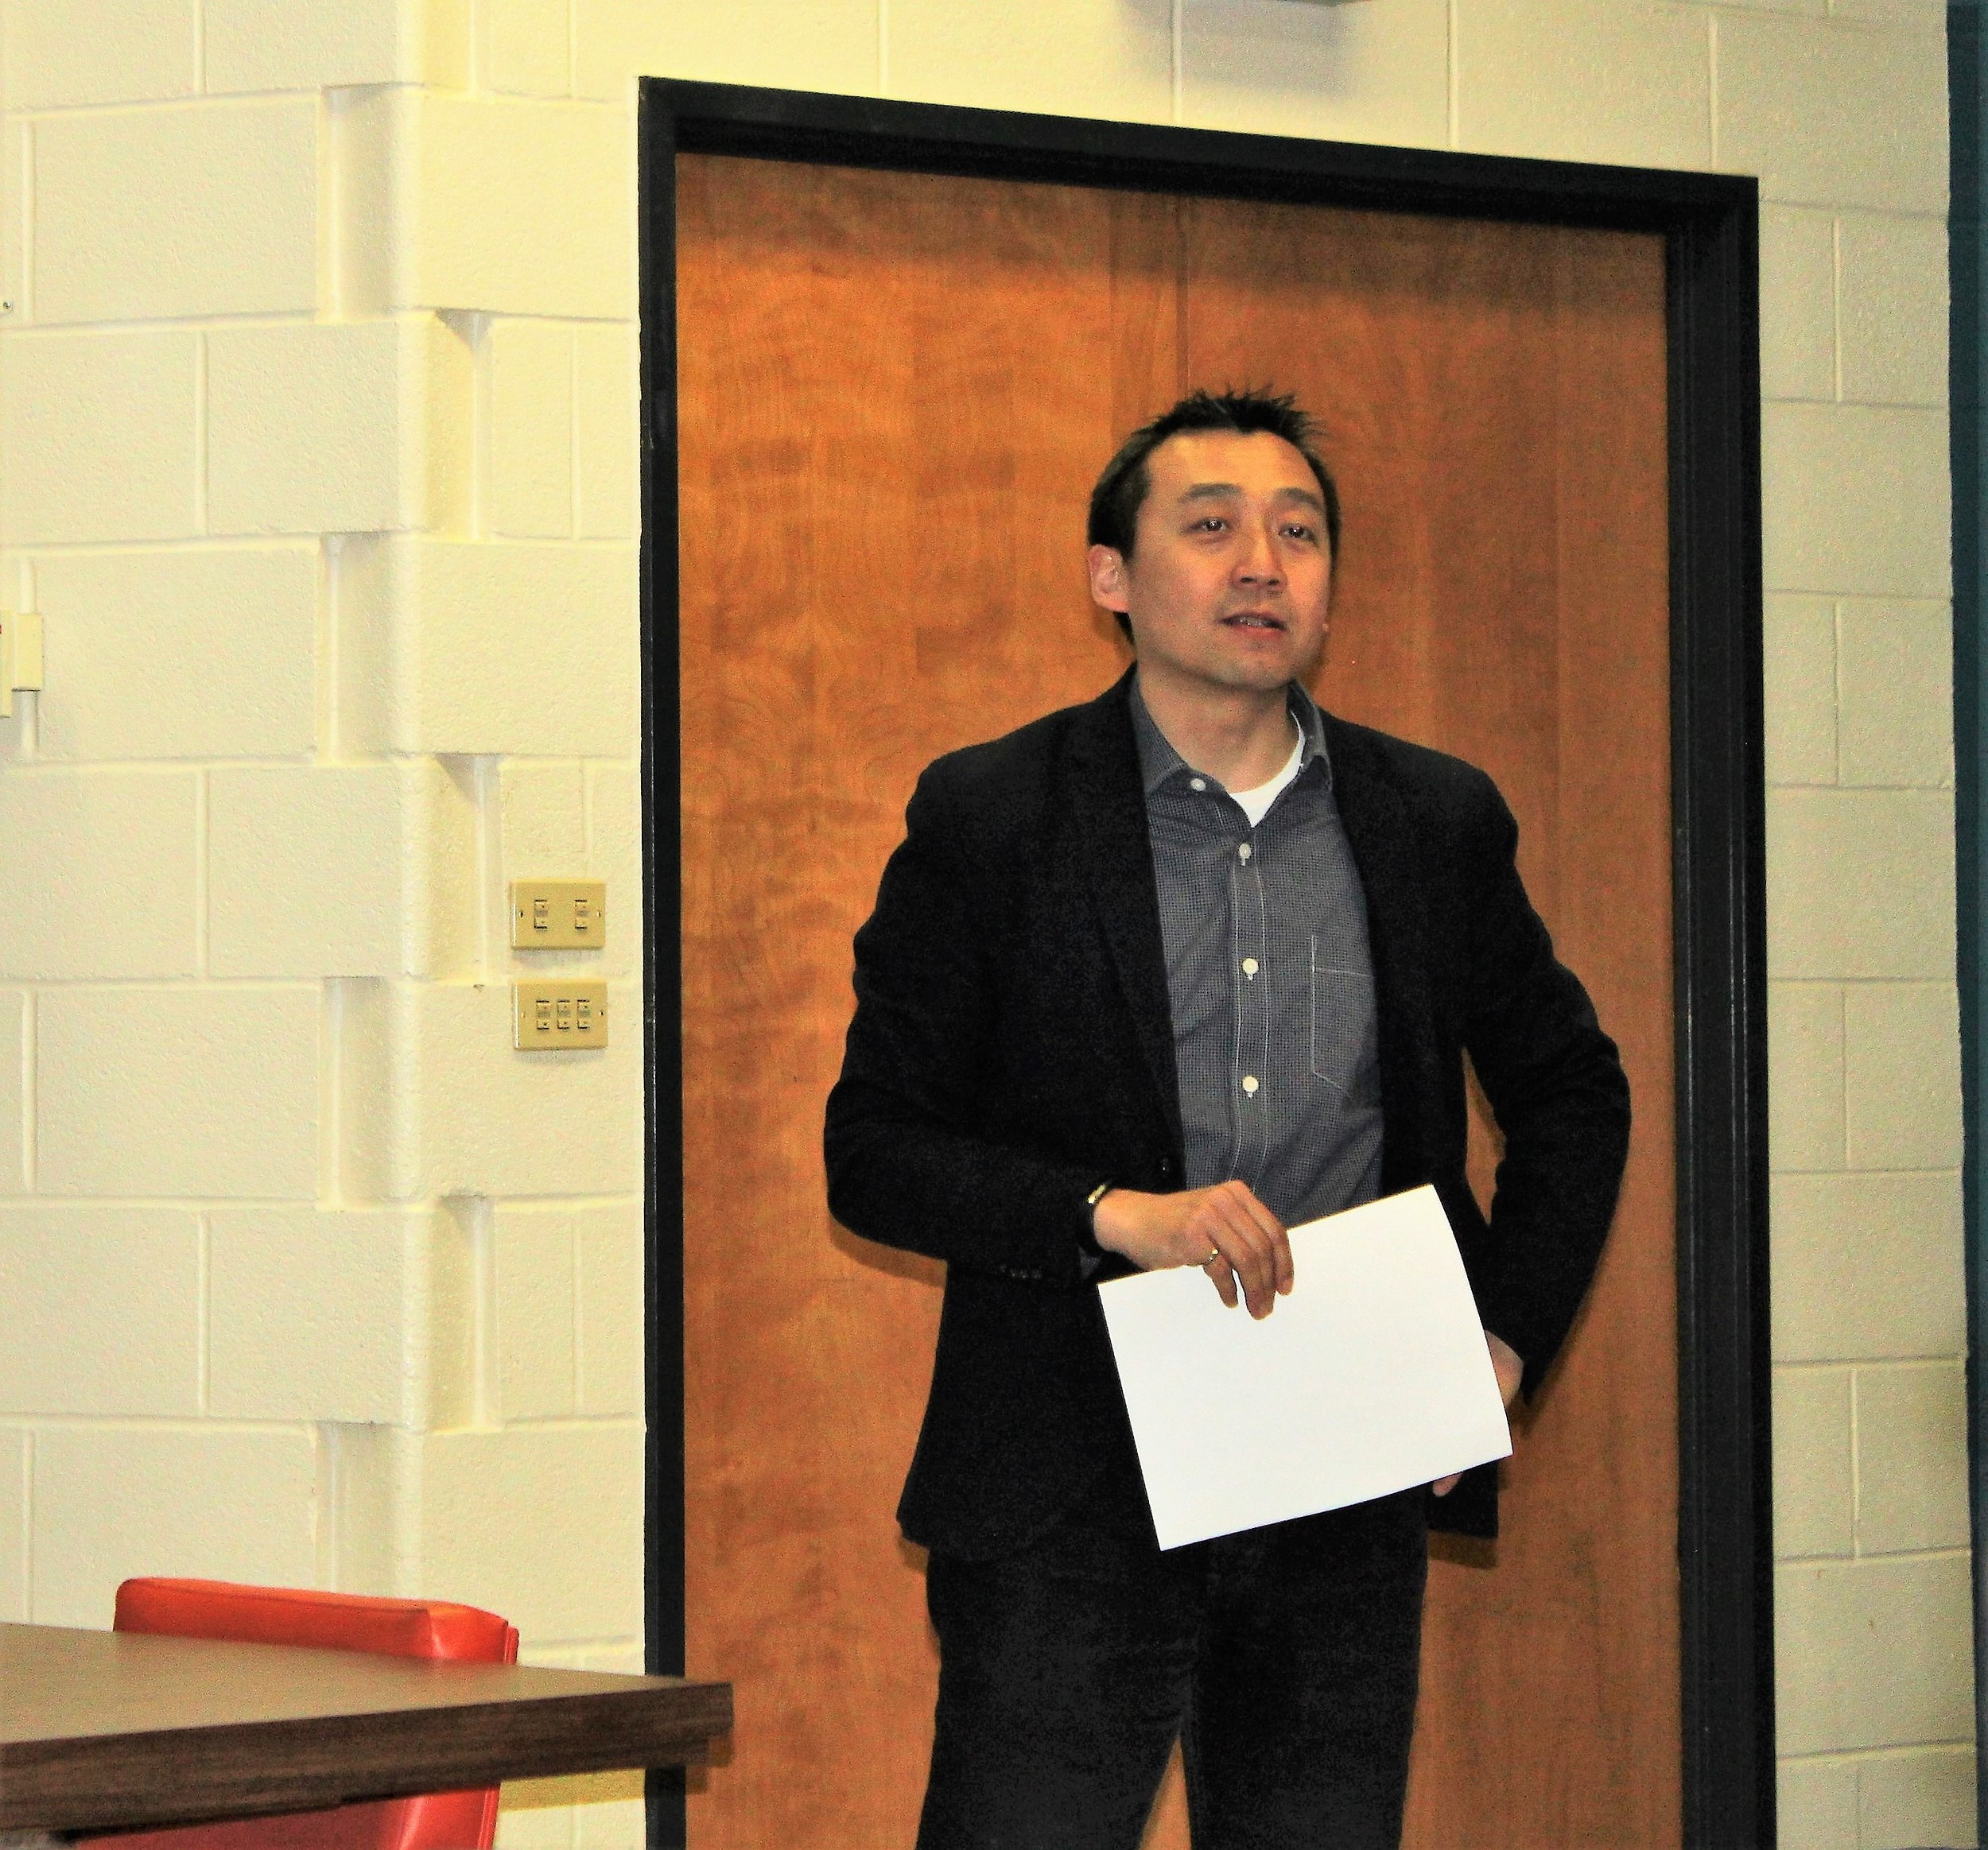 CARRE Director Professor Hugh Liu